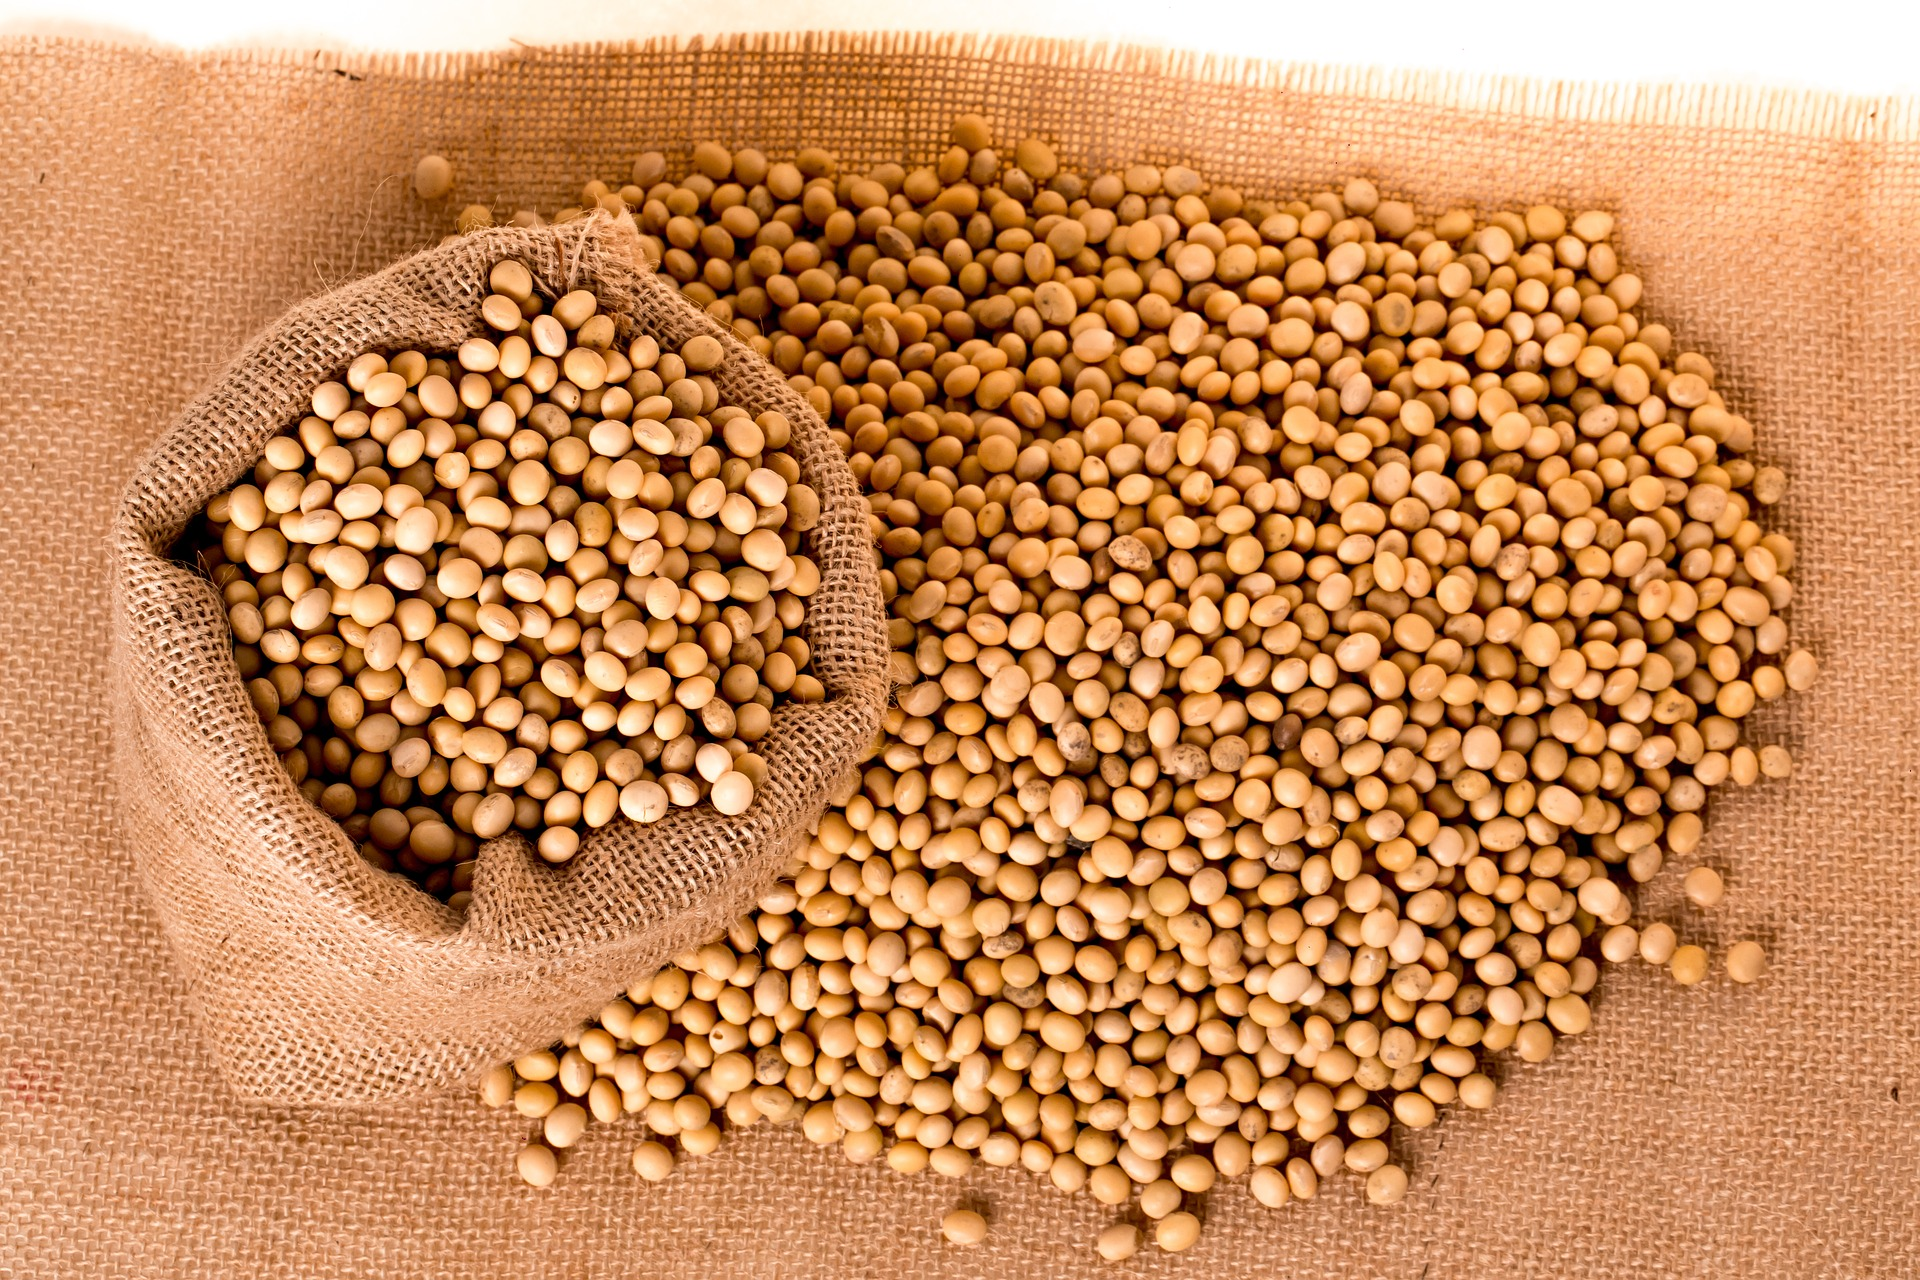 Are soybeans good for you?